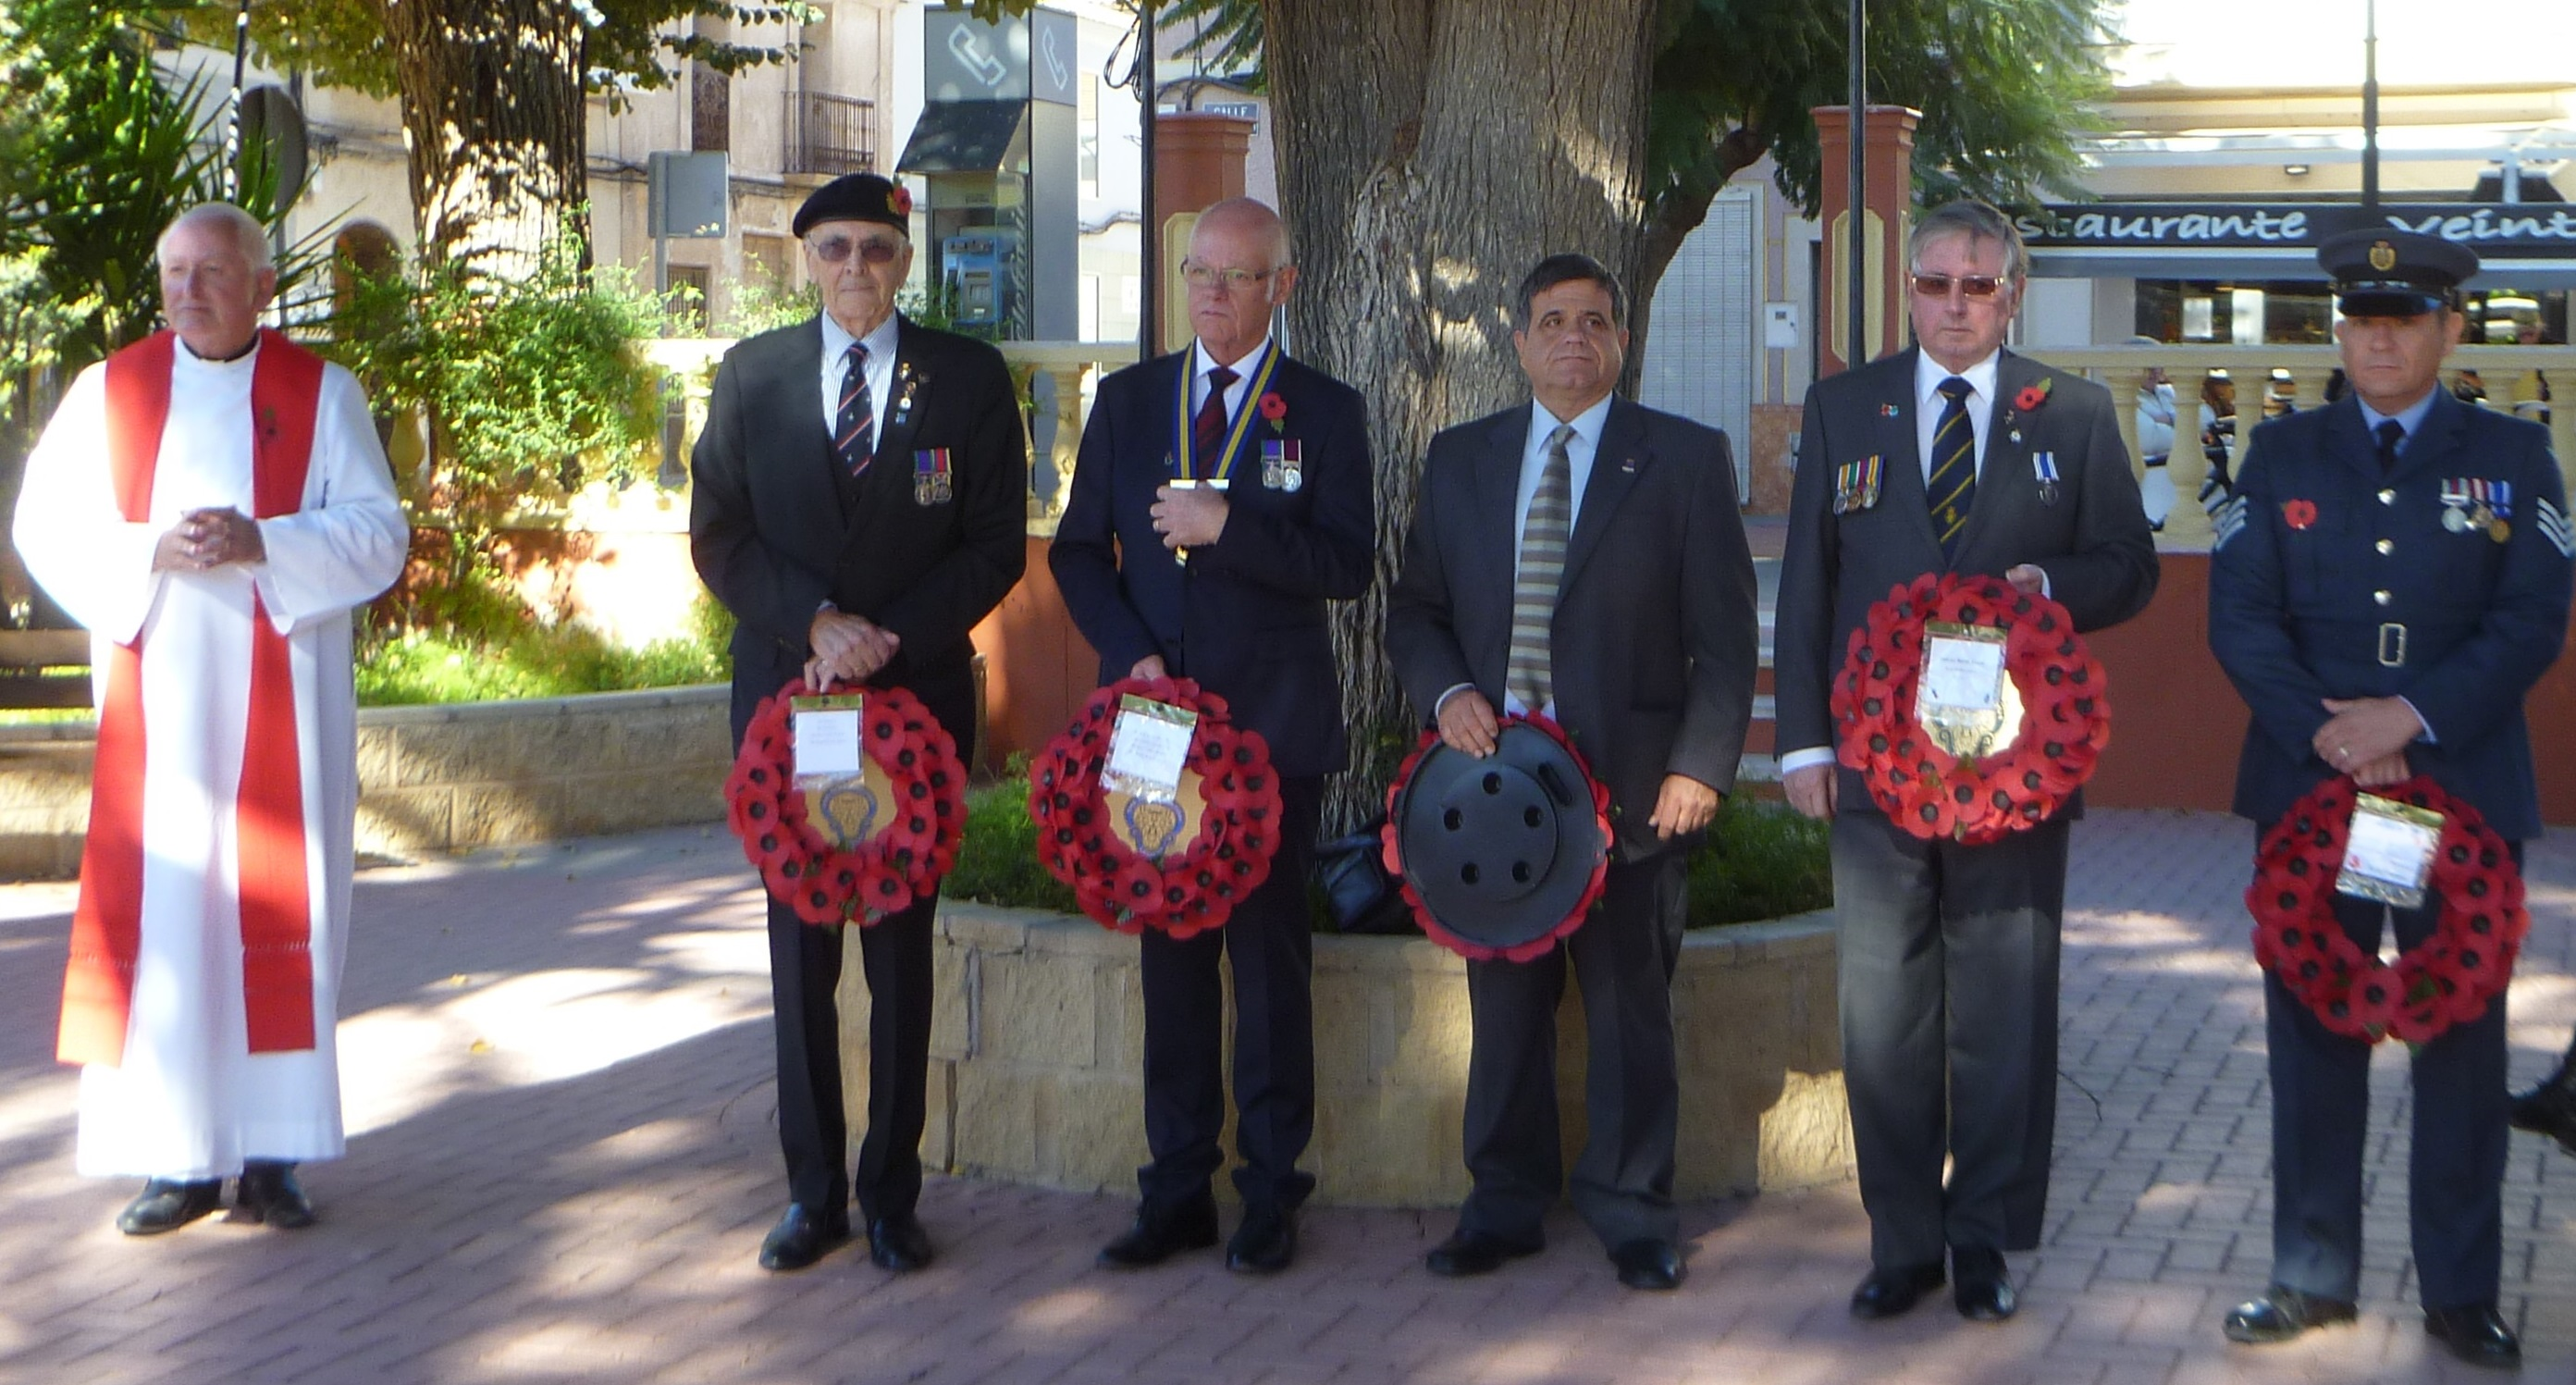 Hond N Valley Branch Of The Royal British Legion The Leader  # Muebles Hondon De Los Frailes